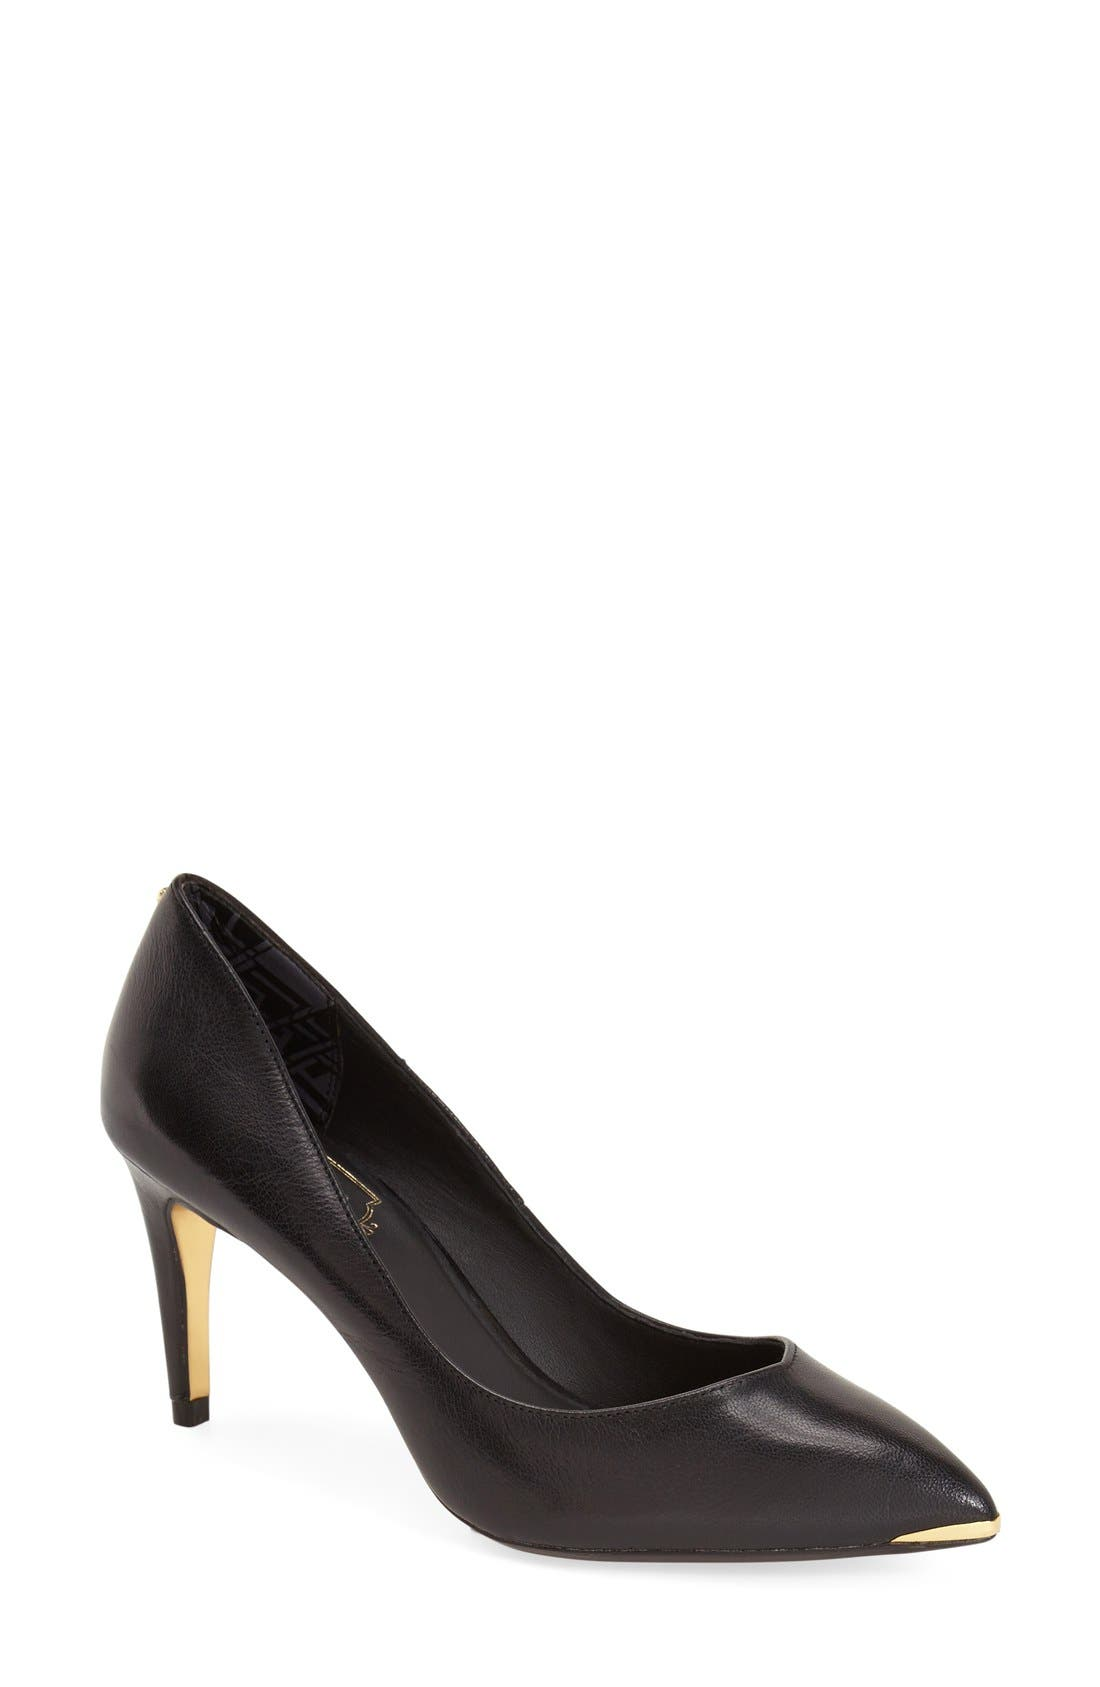 'Monirra' Pointy Toe Pump,                             Main thumbnail 1, color,                             001